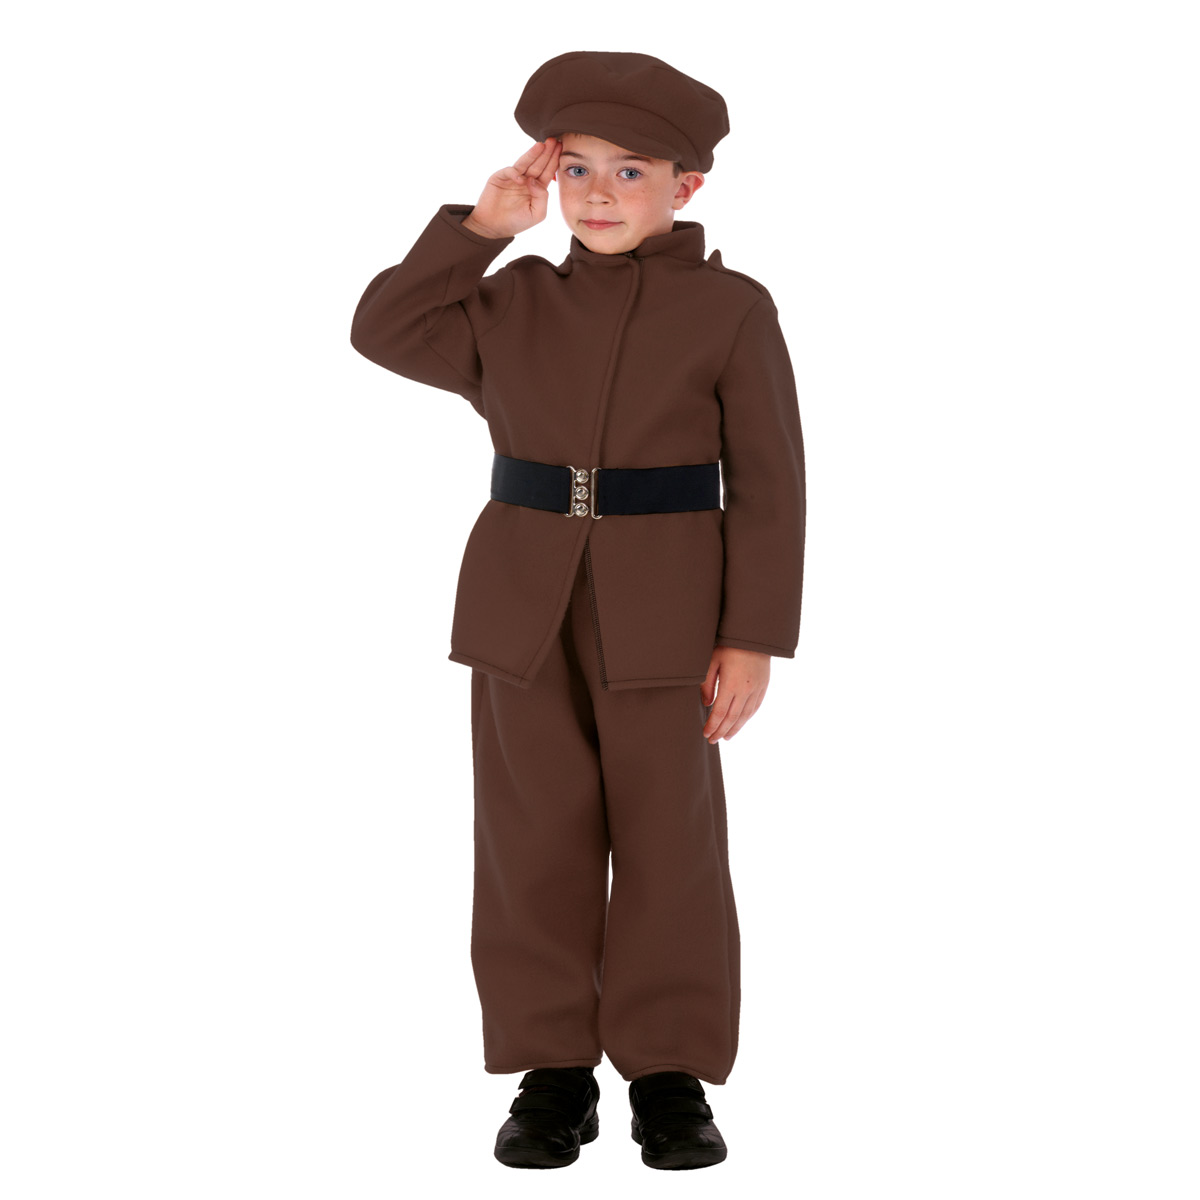 SALE Boys Patriot Soldier Fancy Dress Costume American Civil War Military Outfit